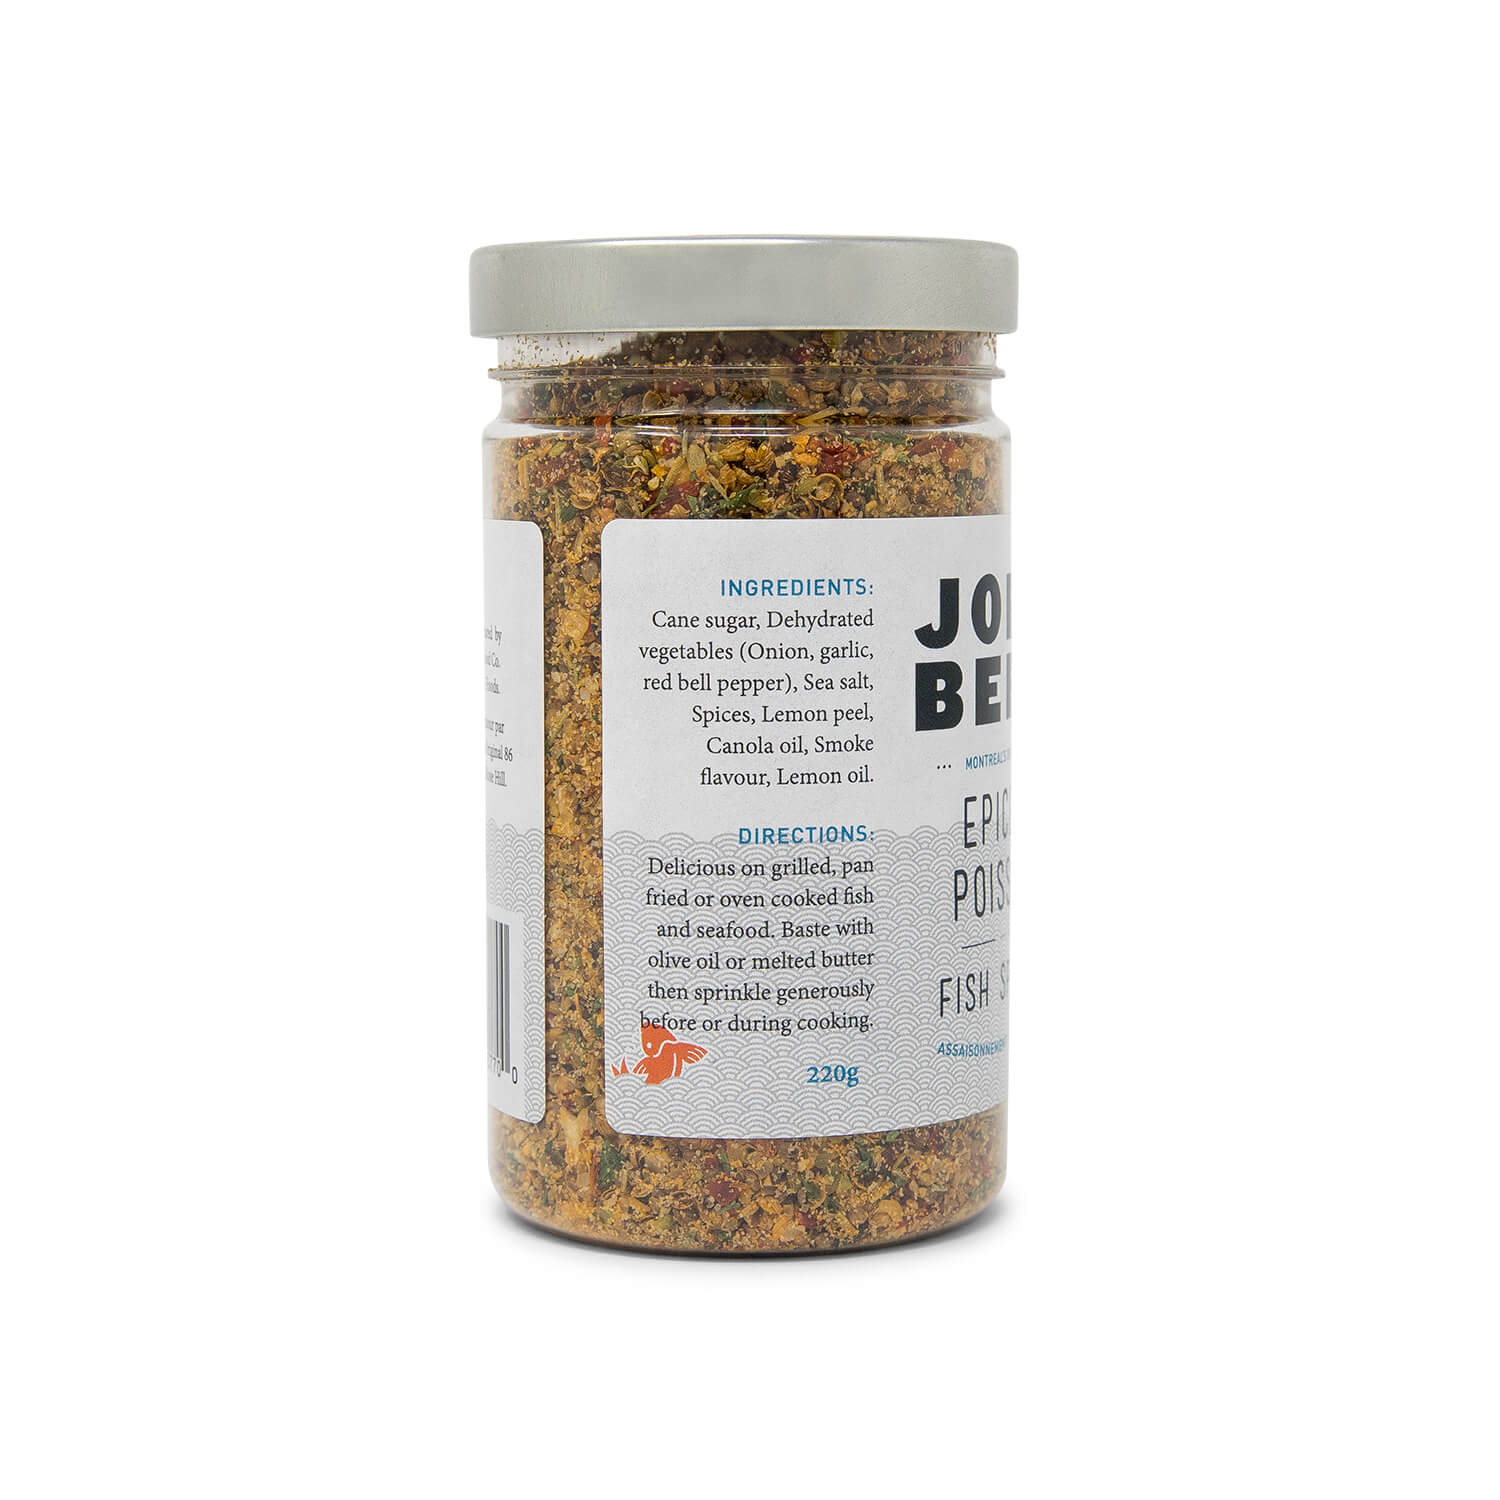 Joe Beef Fish Spices (220g)